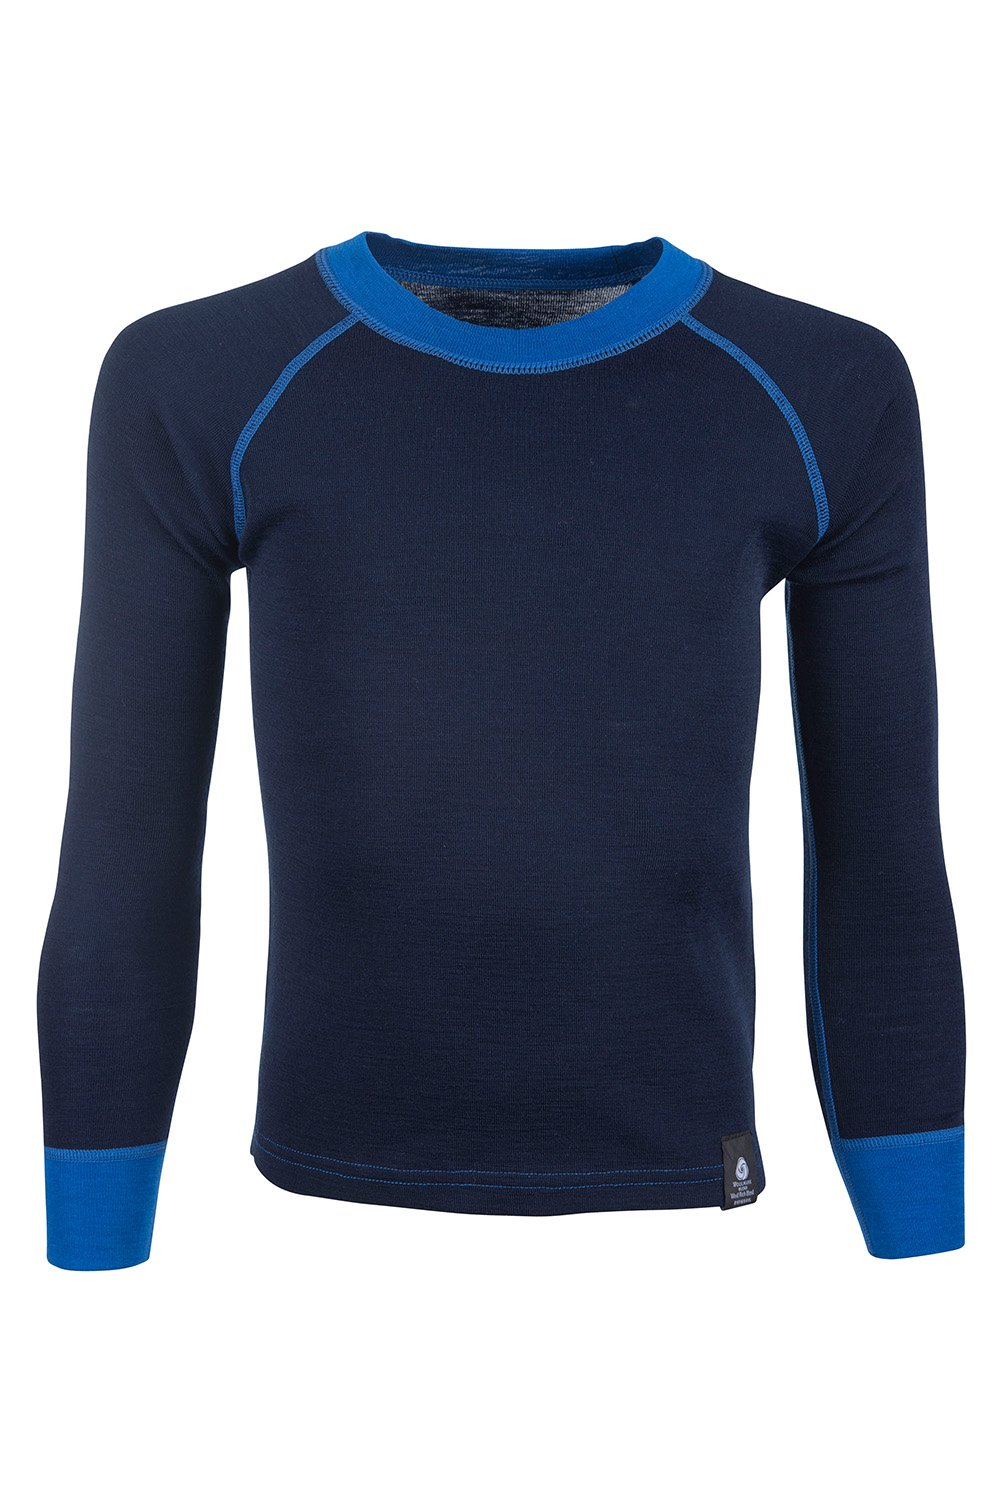 Mountain Warehouse Merino Kids Top -Breathable, Fast Dry Childrens Tee Blue 9-10 Years